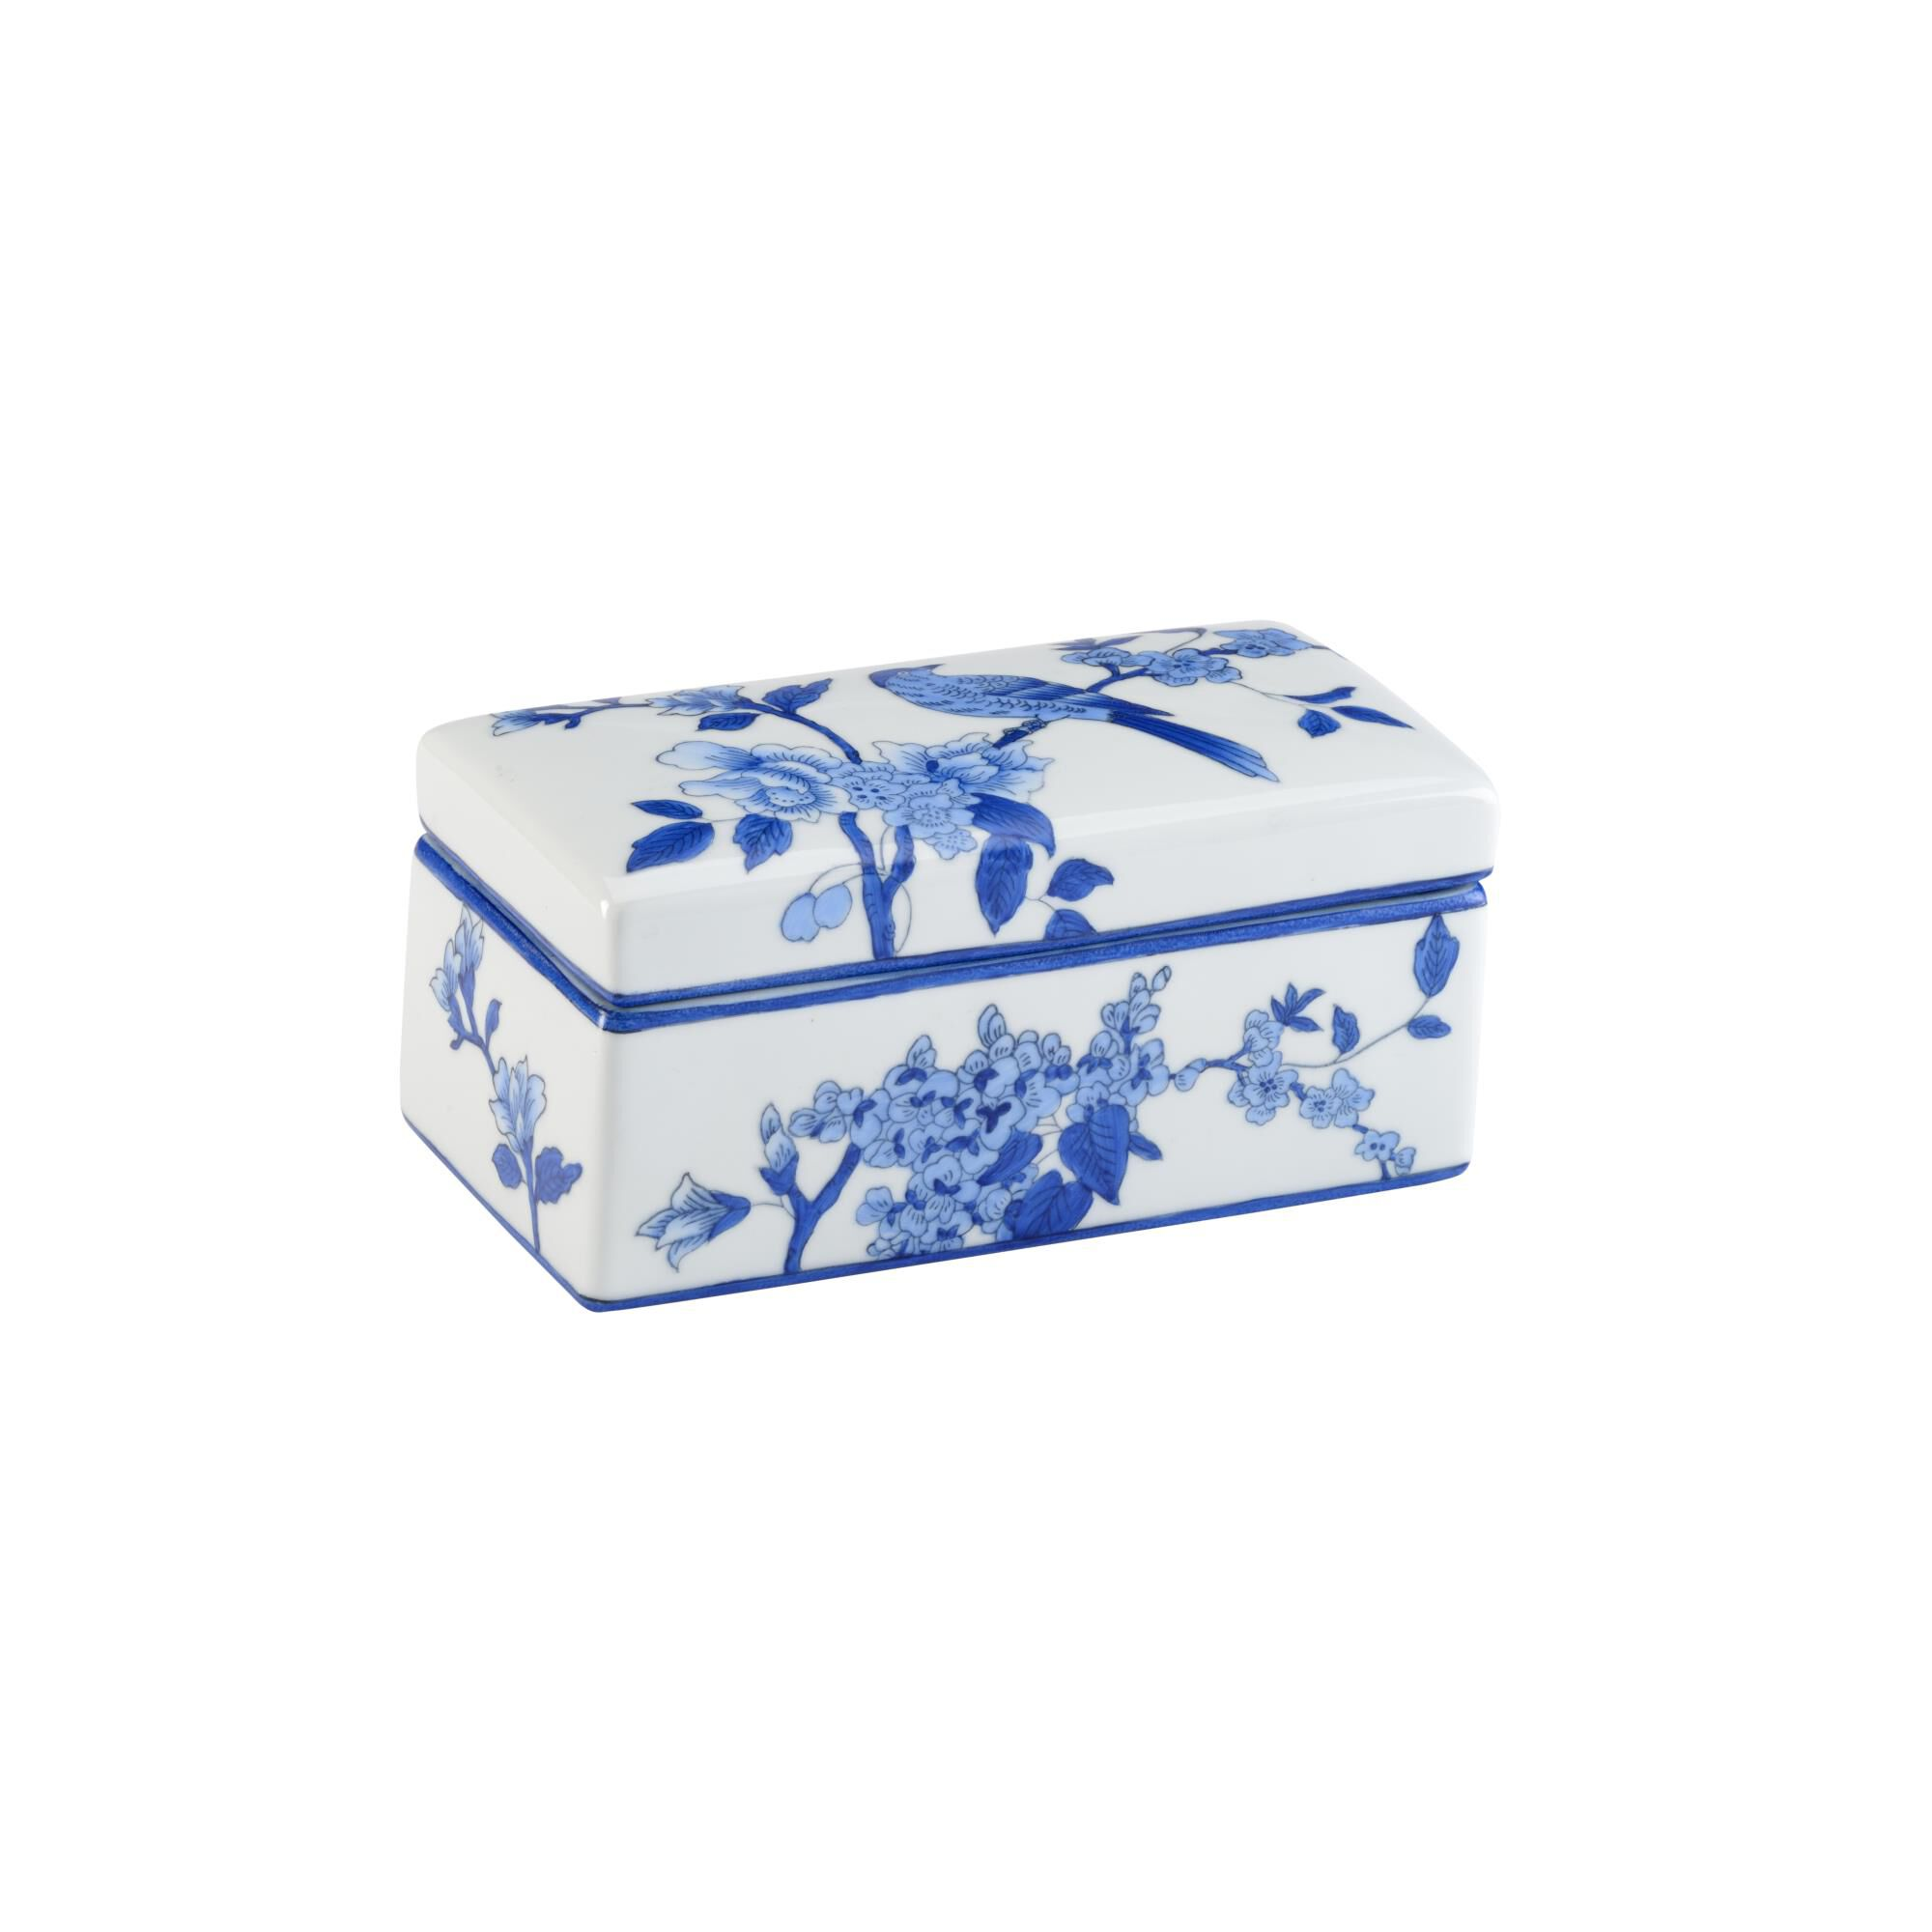 Chelsea House BLUE BIRD BOX (LG) Accent Box - 383790 - Traditional (2275168) photo